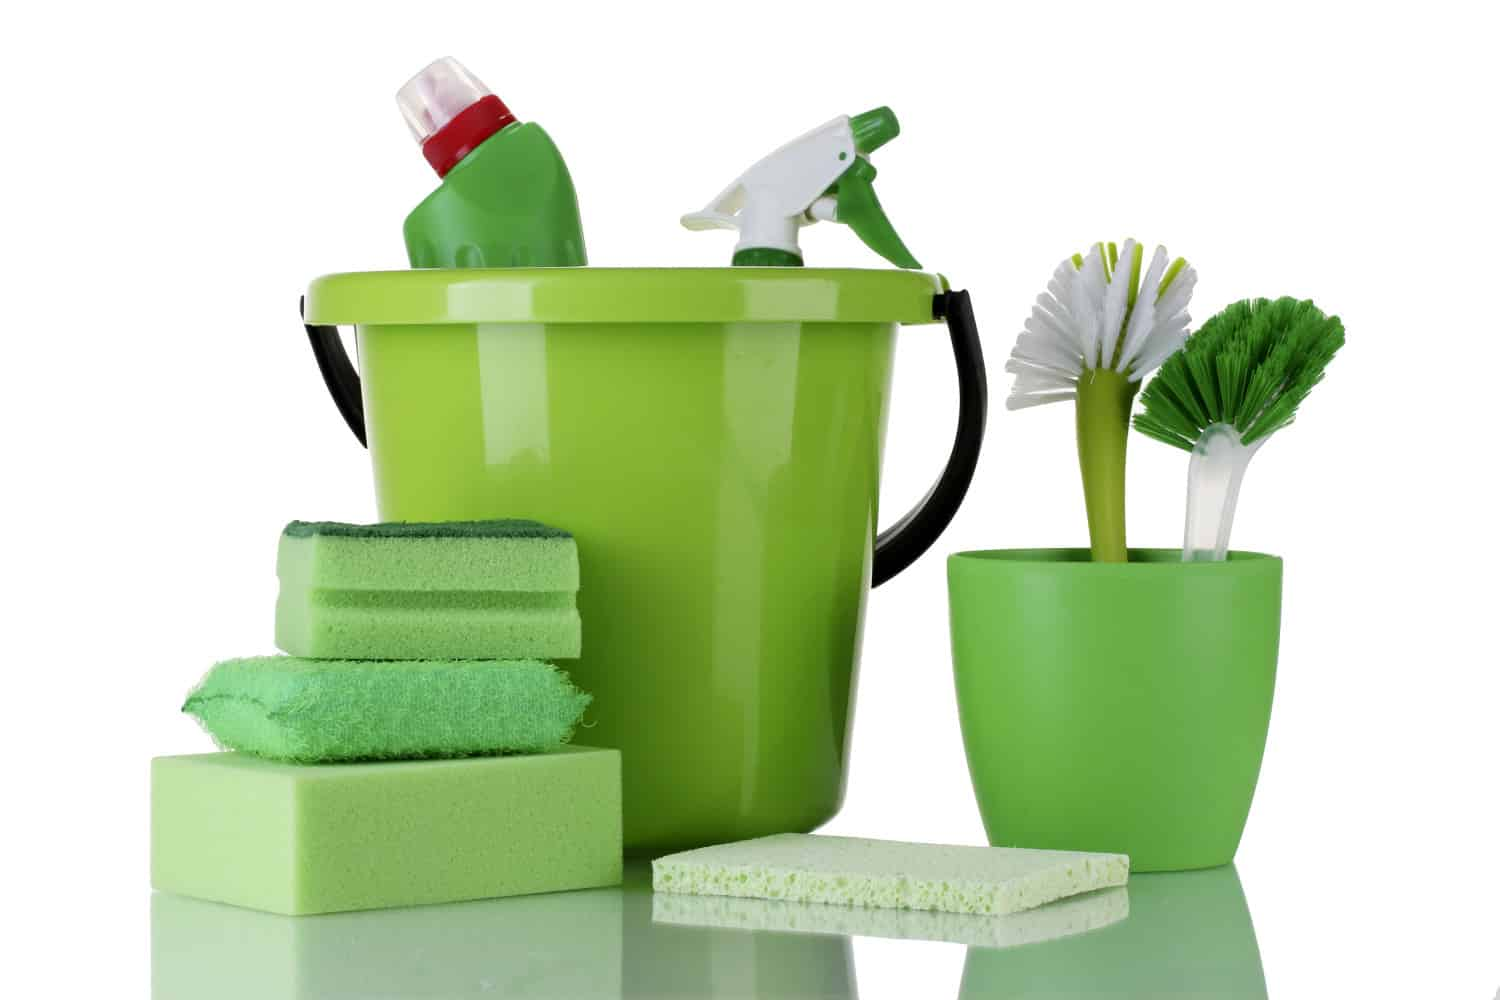 A Nova Scotia cleaning company, the House Whisperer uses Green and Eco Friendly Cleaning products – including many cleaning products that we create ourselves from natural ingredients like vinegar, lemon juice, and bio-degradable soaps.